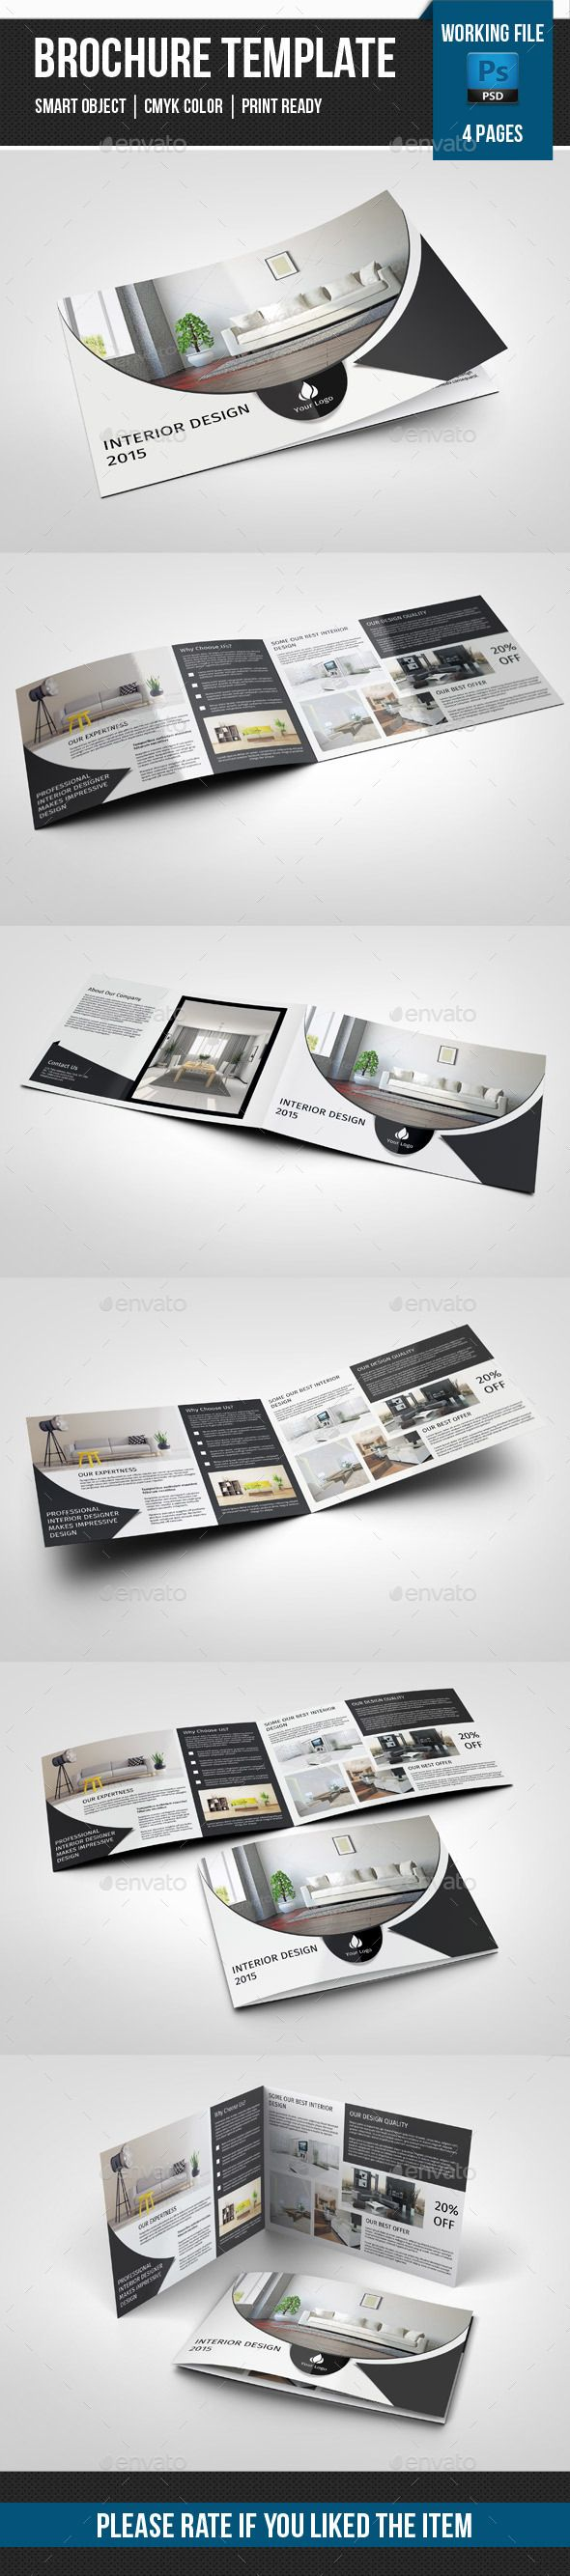 Page Landscape Brochure For Interior DesignV  Brochures